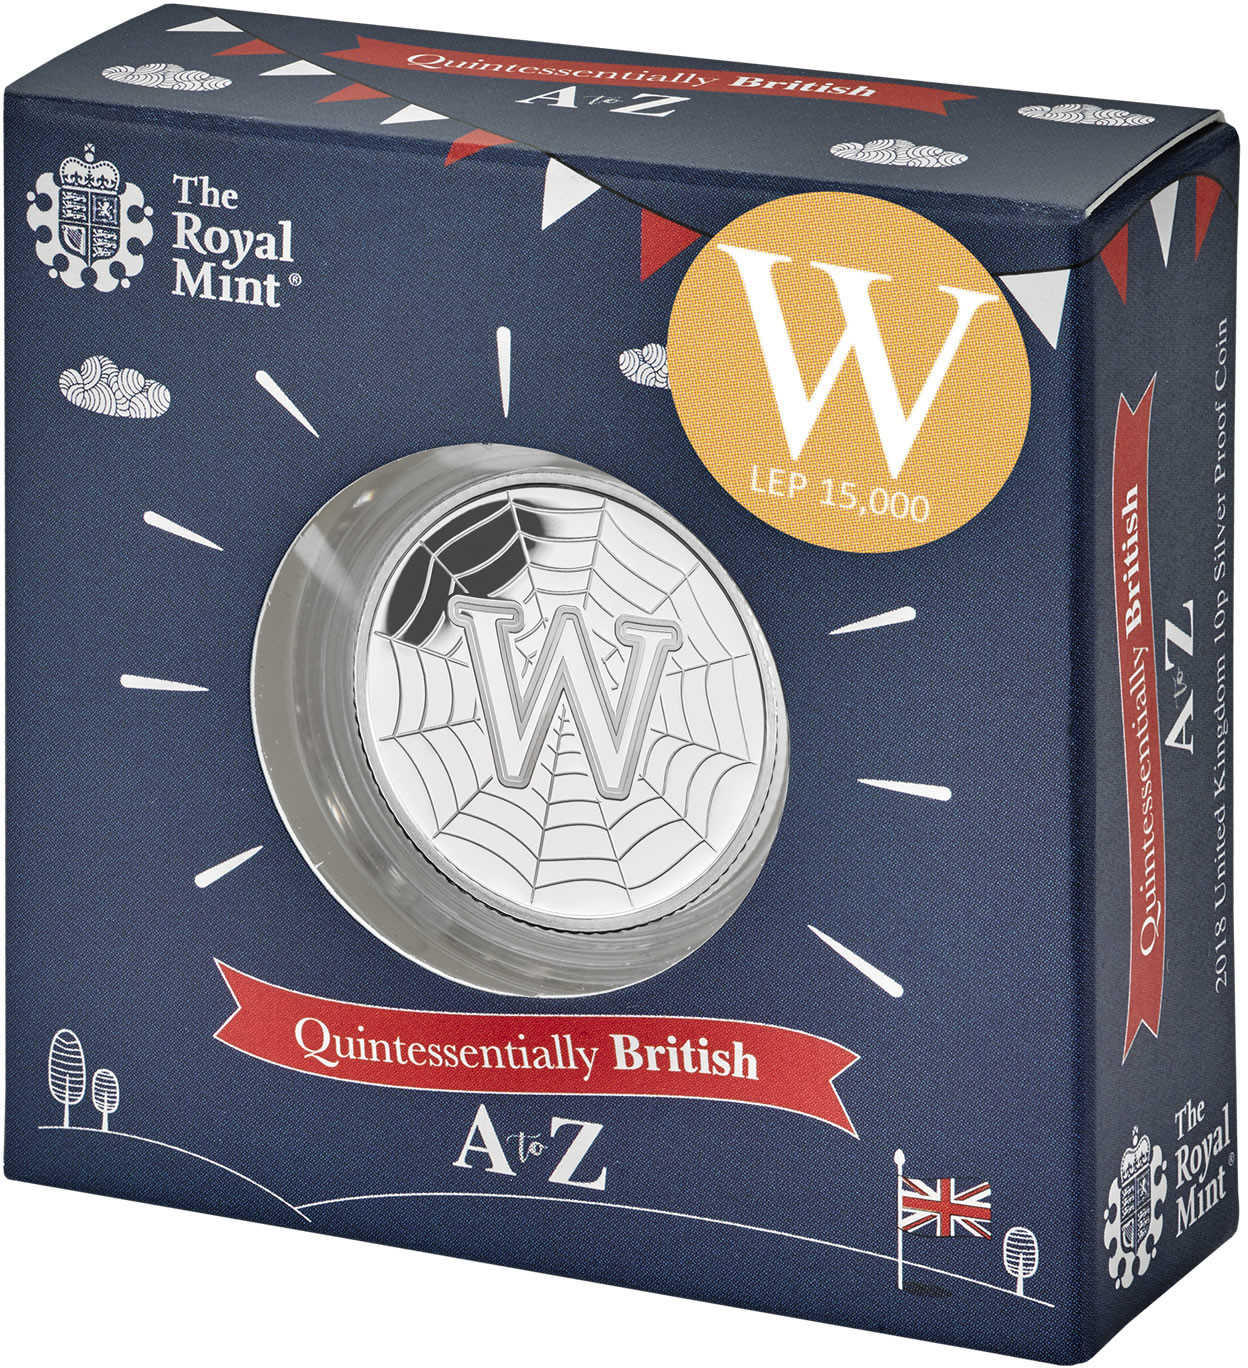 Ten Pence 2018 W - World Wide Web: Photo W - World Wide Web 2018 UK 10p Coin Silver Proof